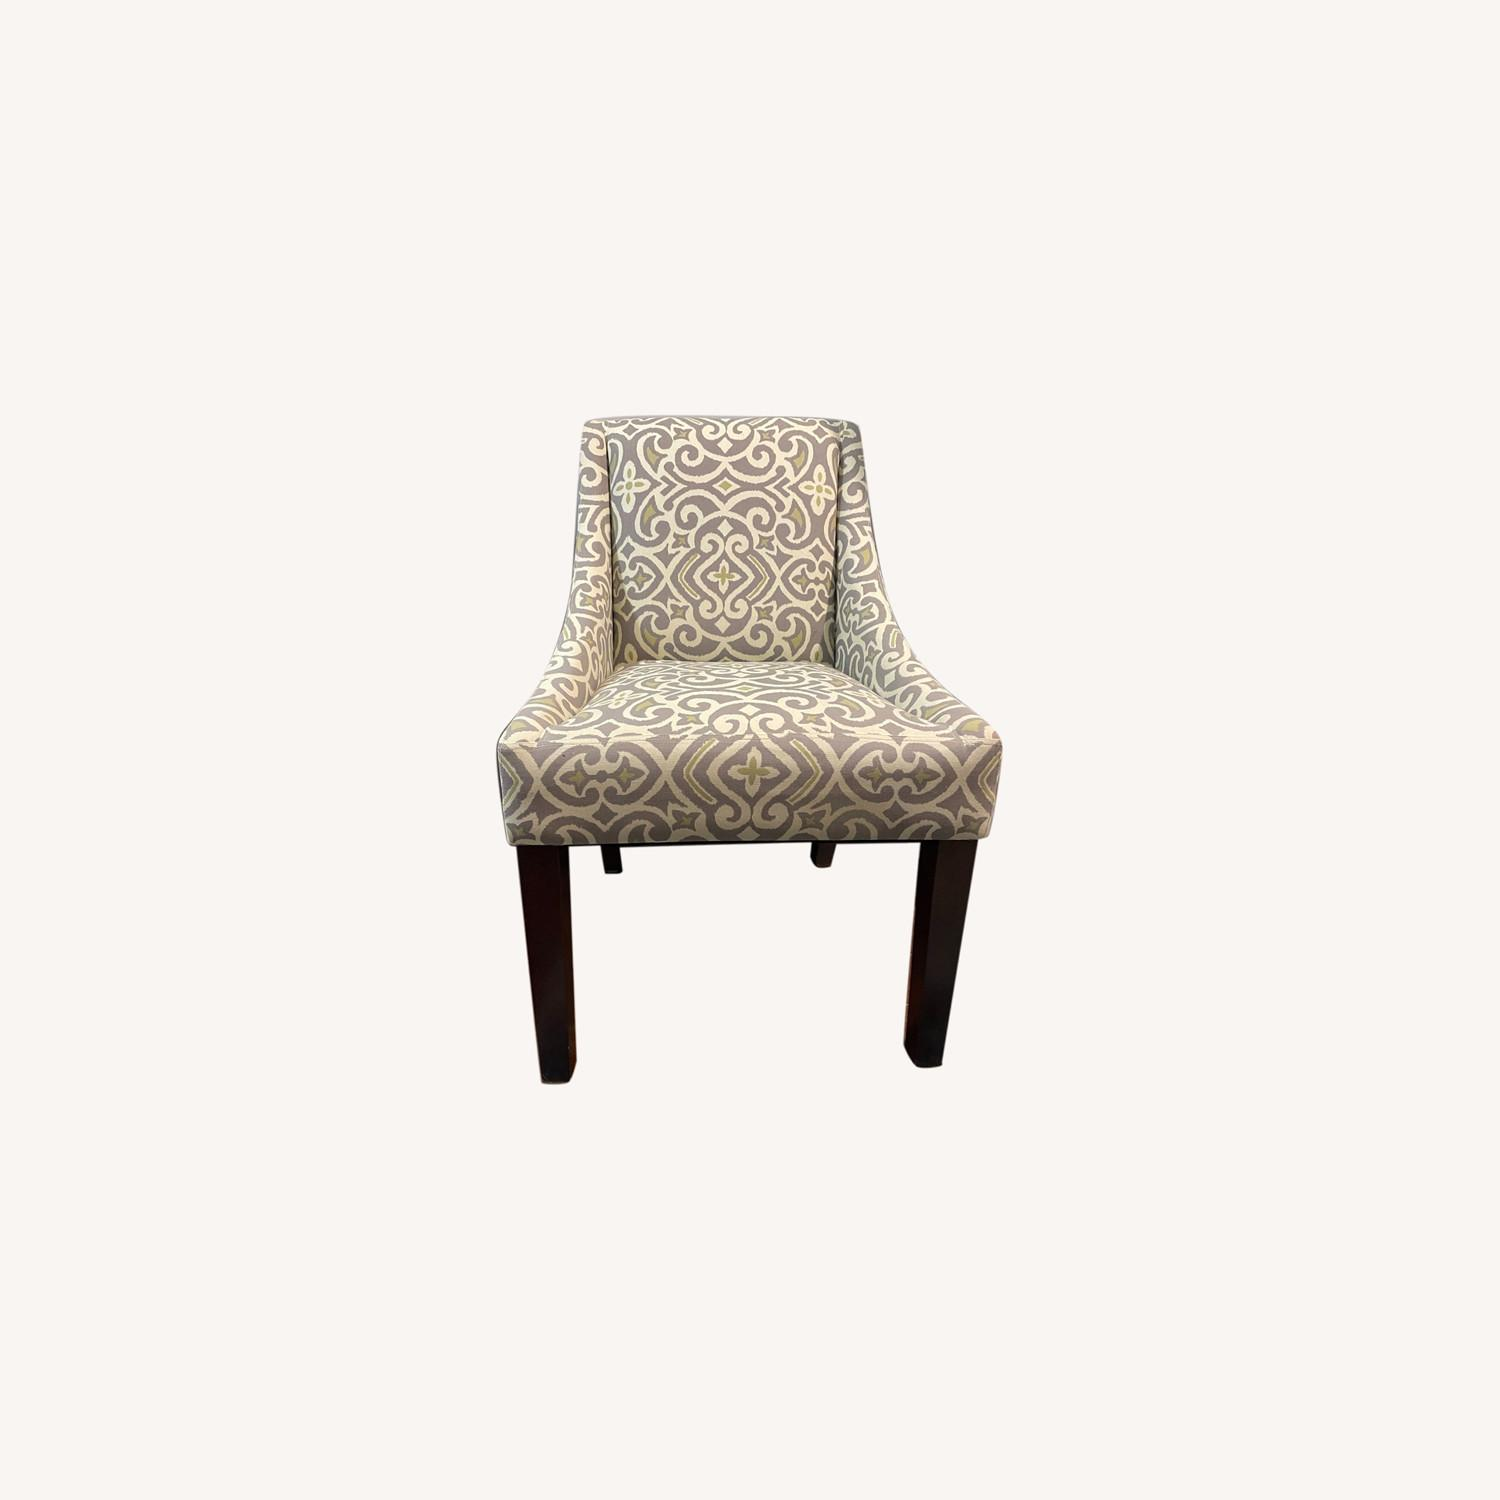 Upholstered Dining Chairs - Set of 2 - image-0